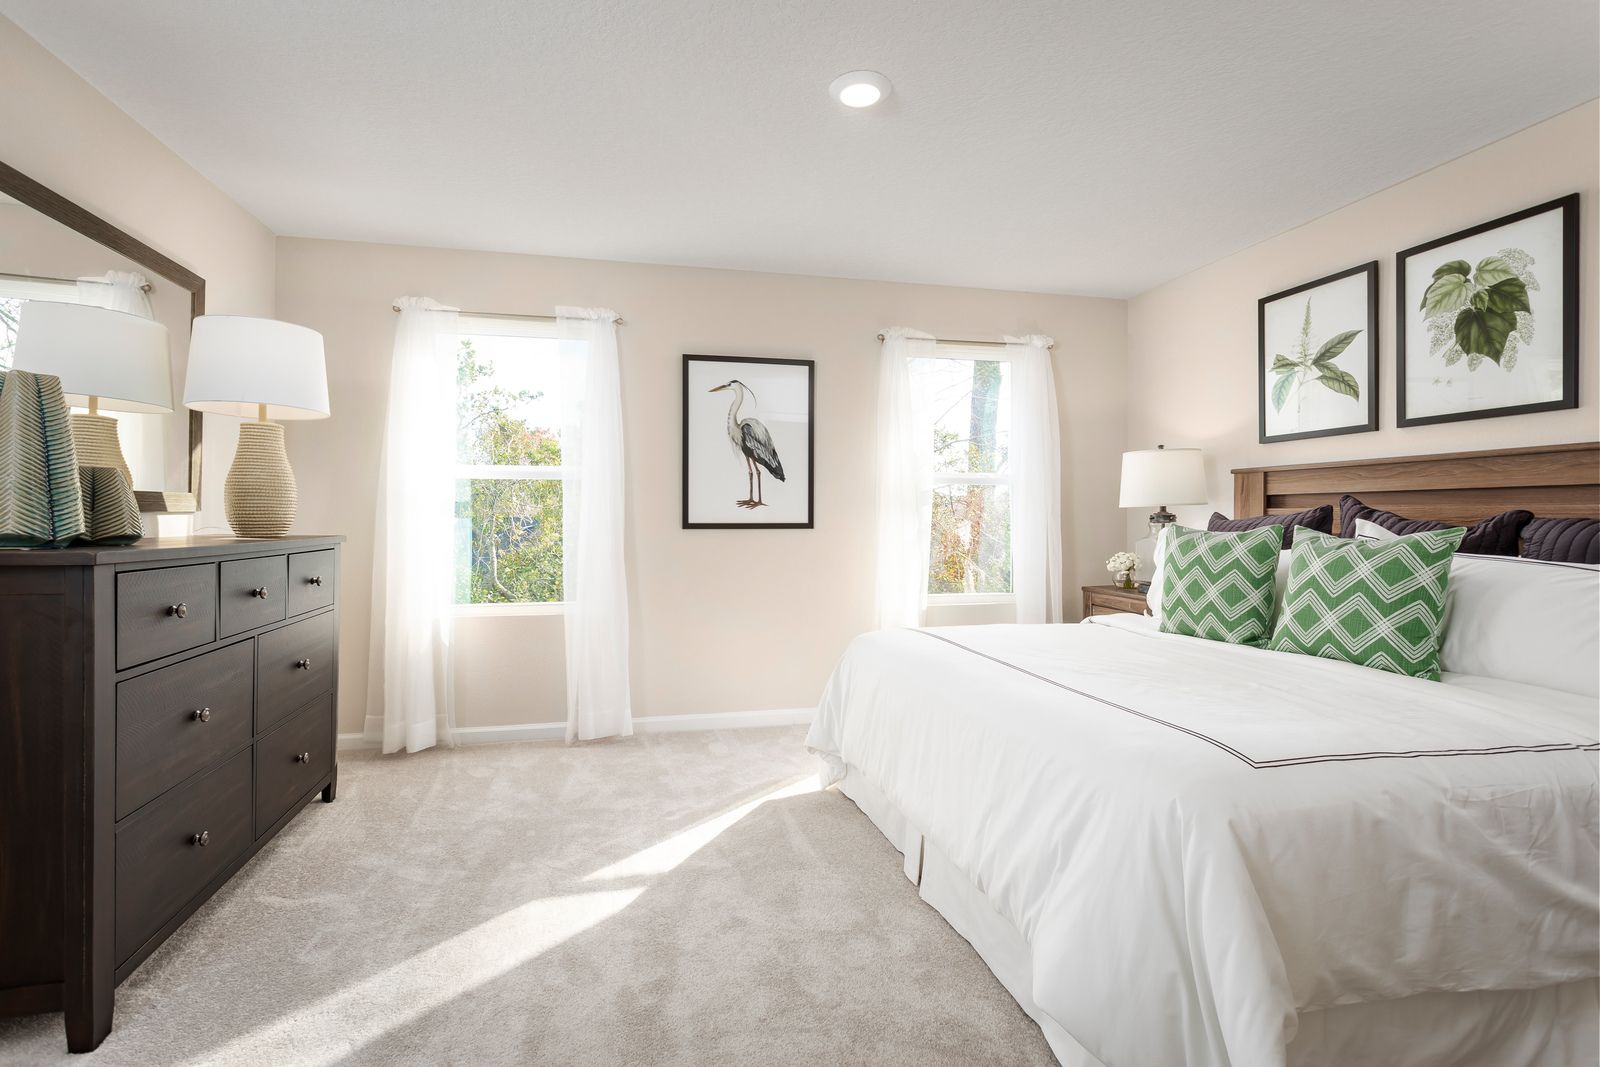 Bedroom featured in the Flamingo By Ryan Homes in Jacksonville-St. Augustine, FL